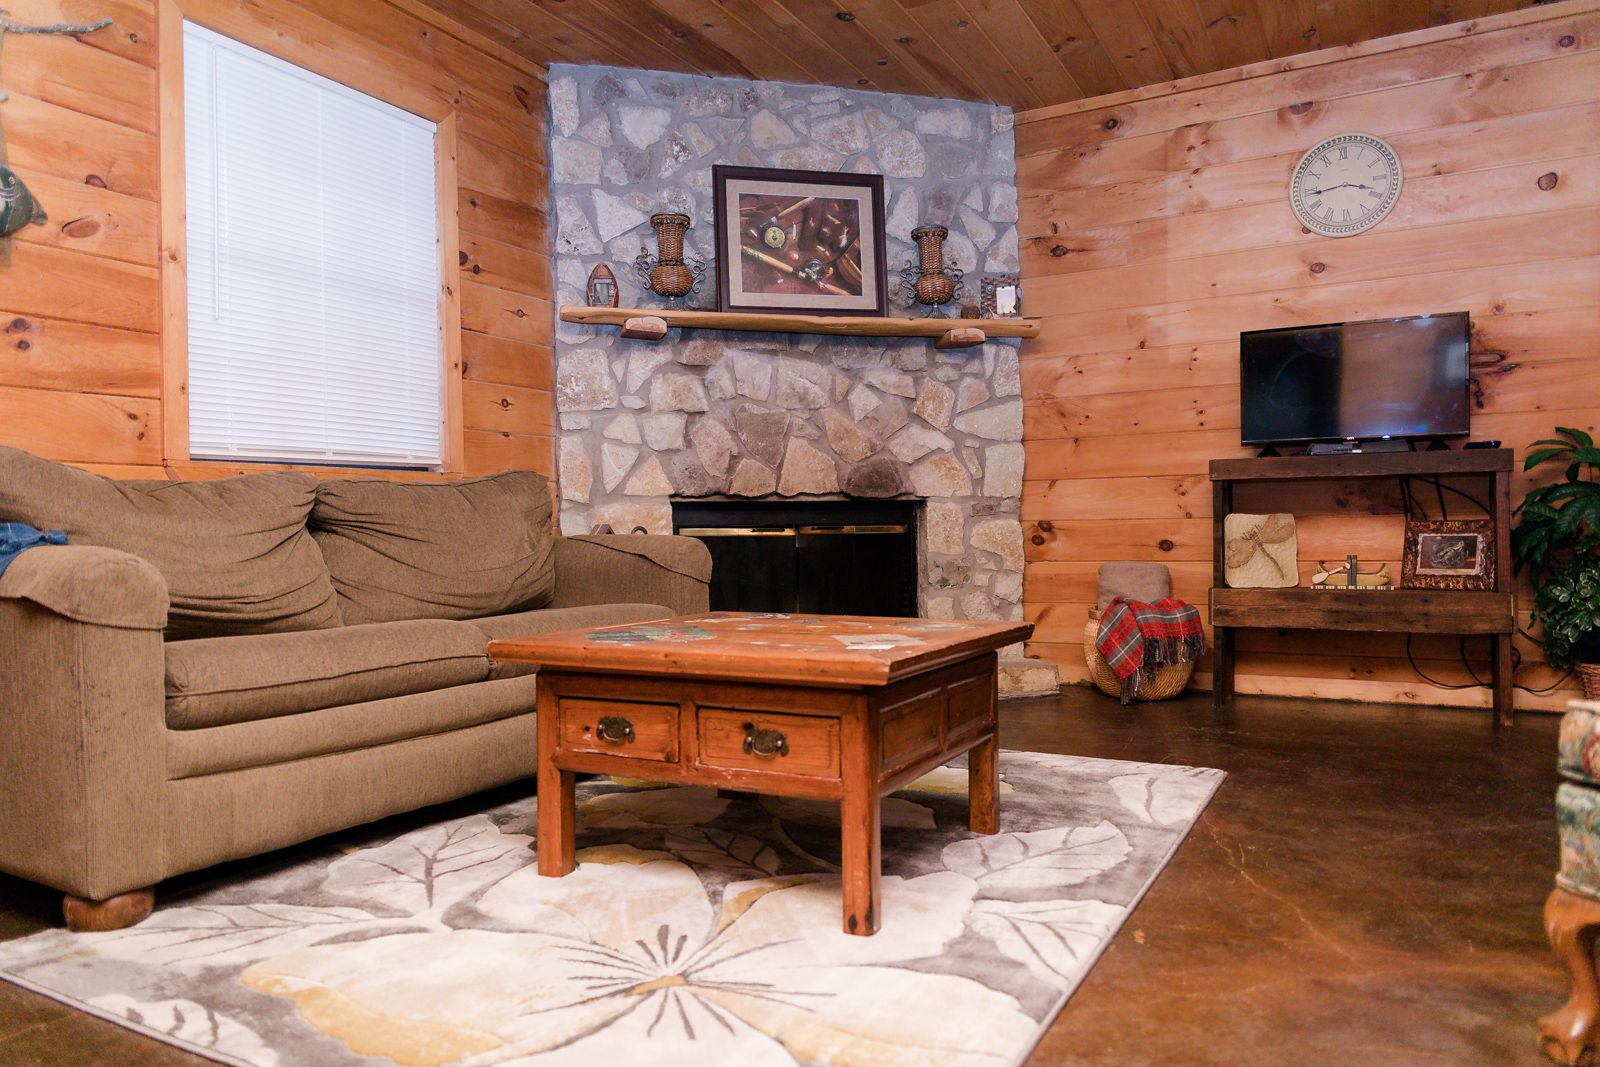 Rocky Point Cabins visitors are nestled near the Chickasaw National Recreation Area and Lake of the Arbuckles, with Turner Falls State Park less than 30 minutes away.